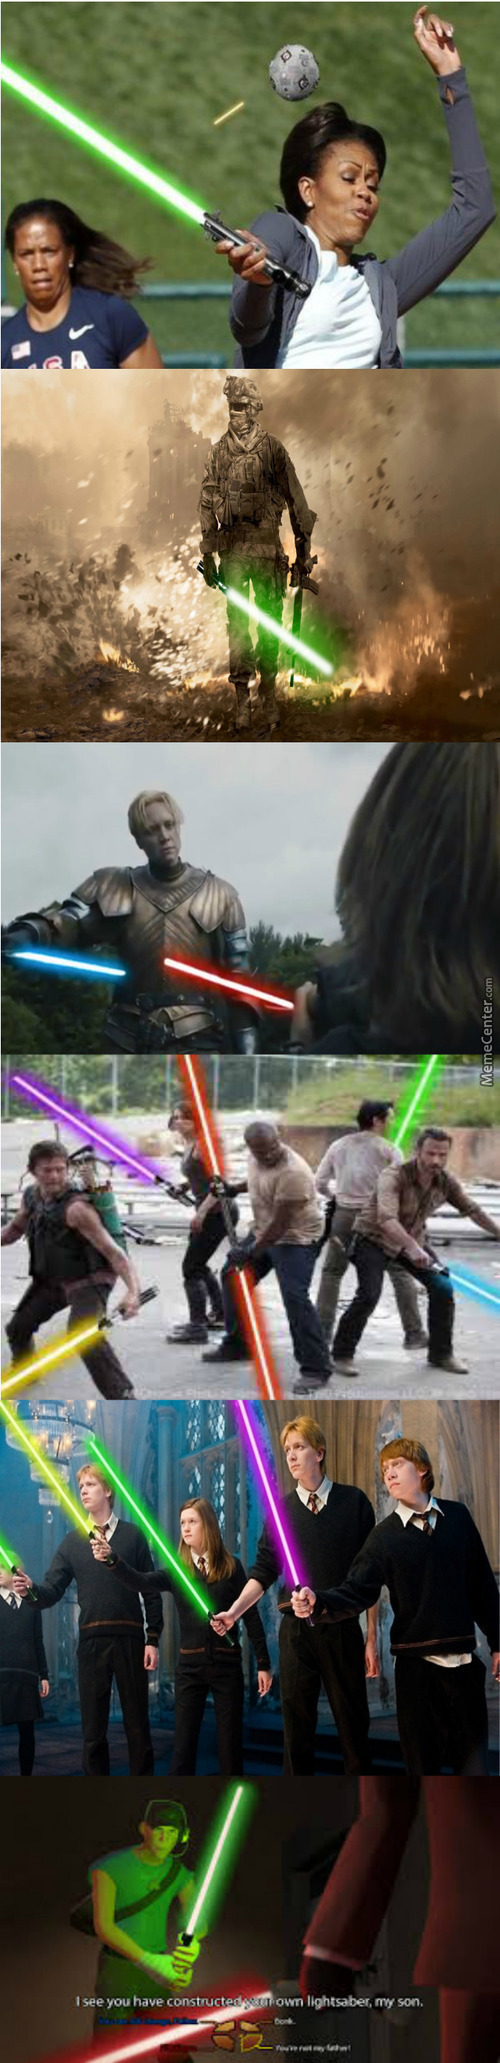 Everything Is Cooler With Lightsabers